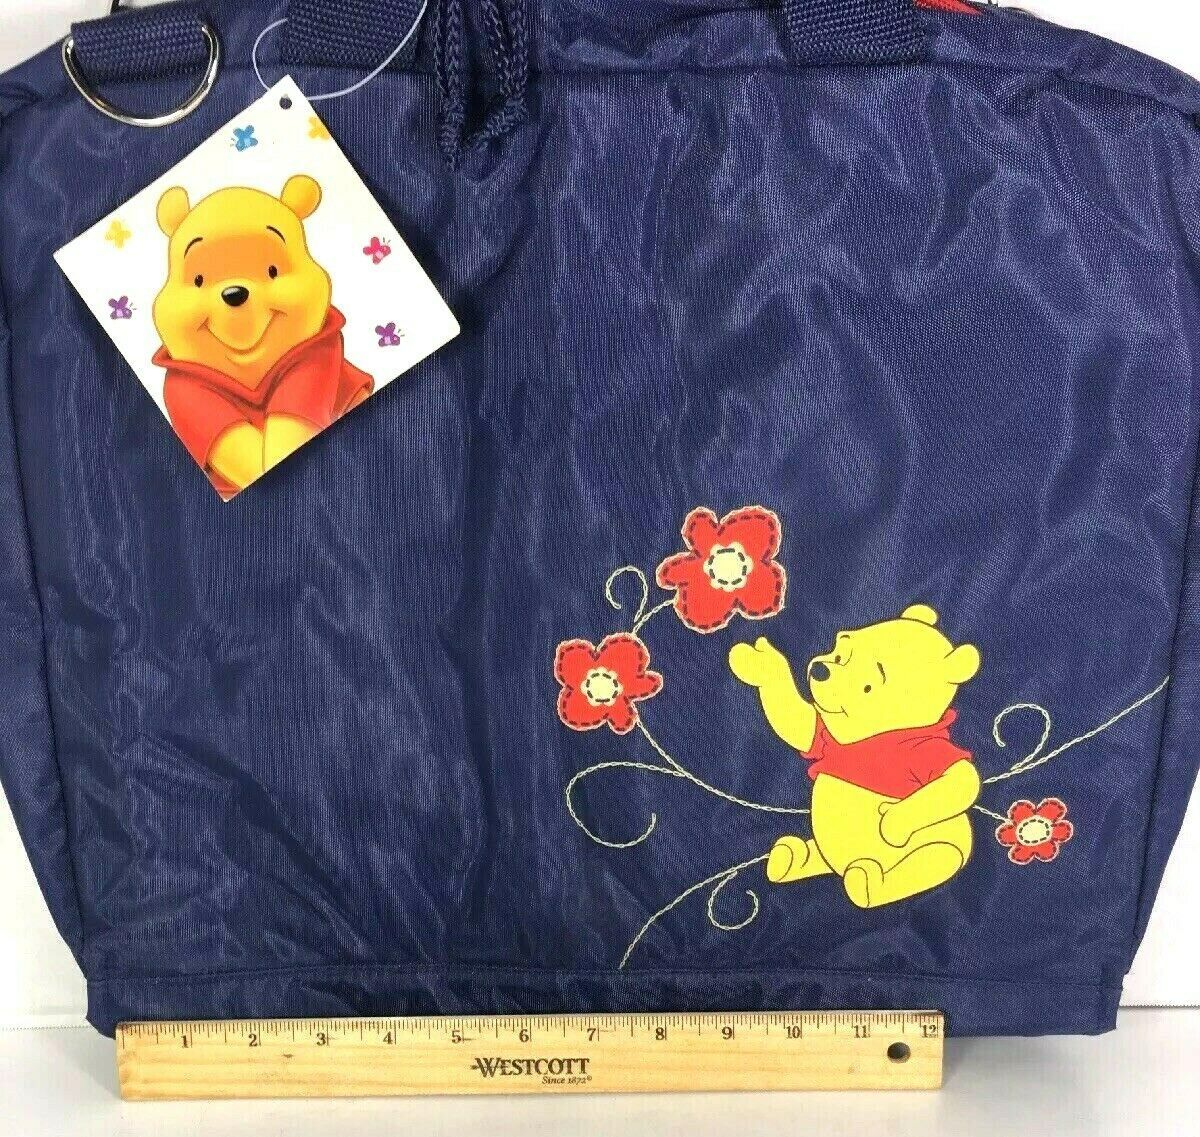 Winnie the Pooh Large Blue Nylon Travel Bag  image 7